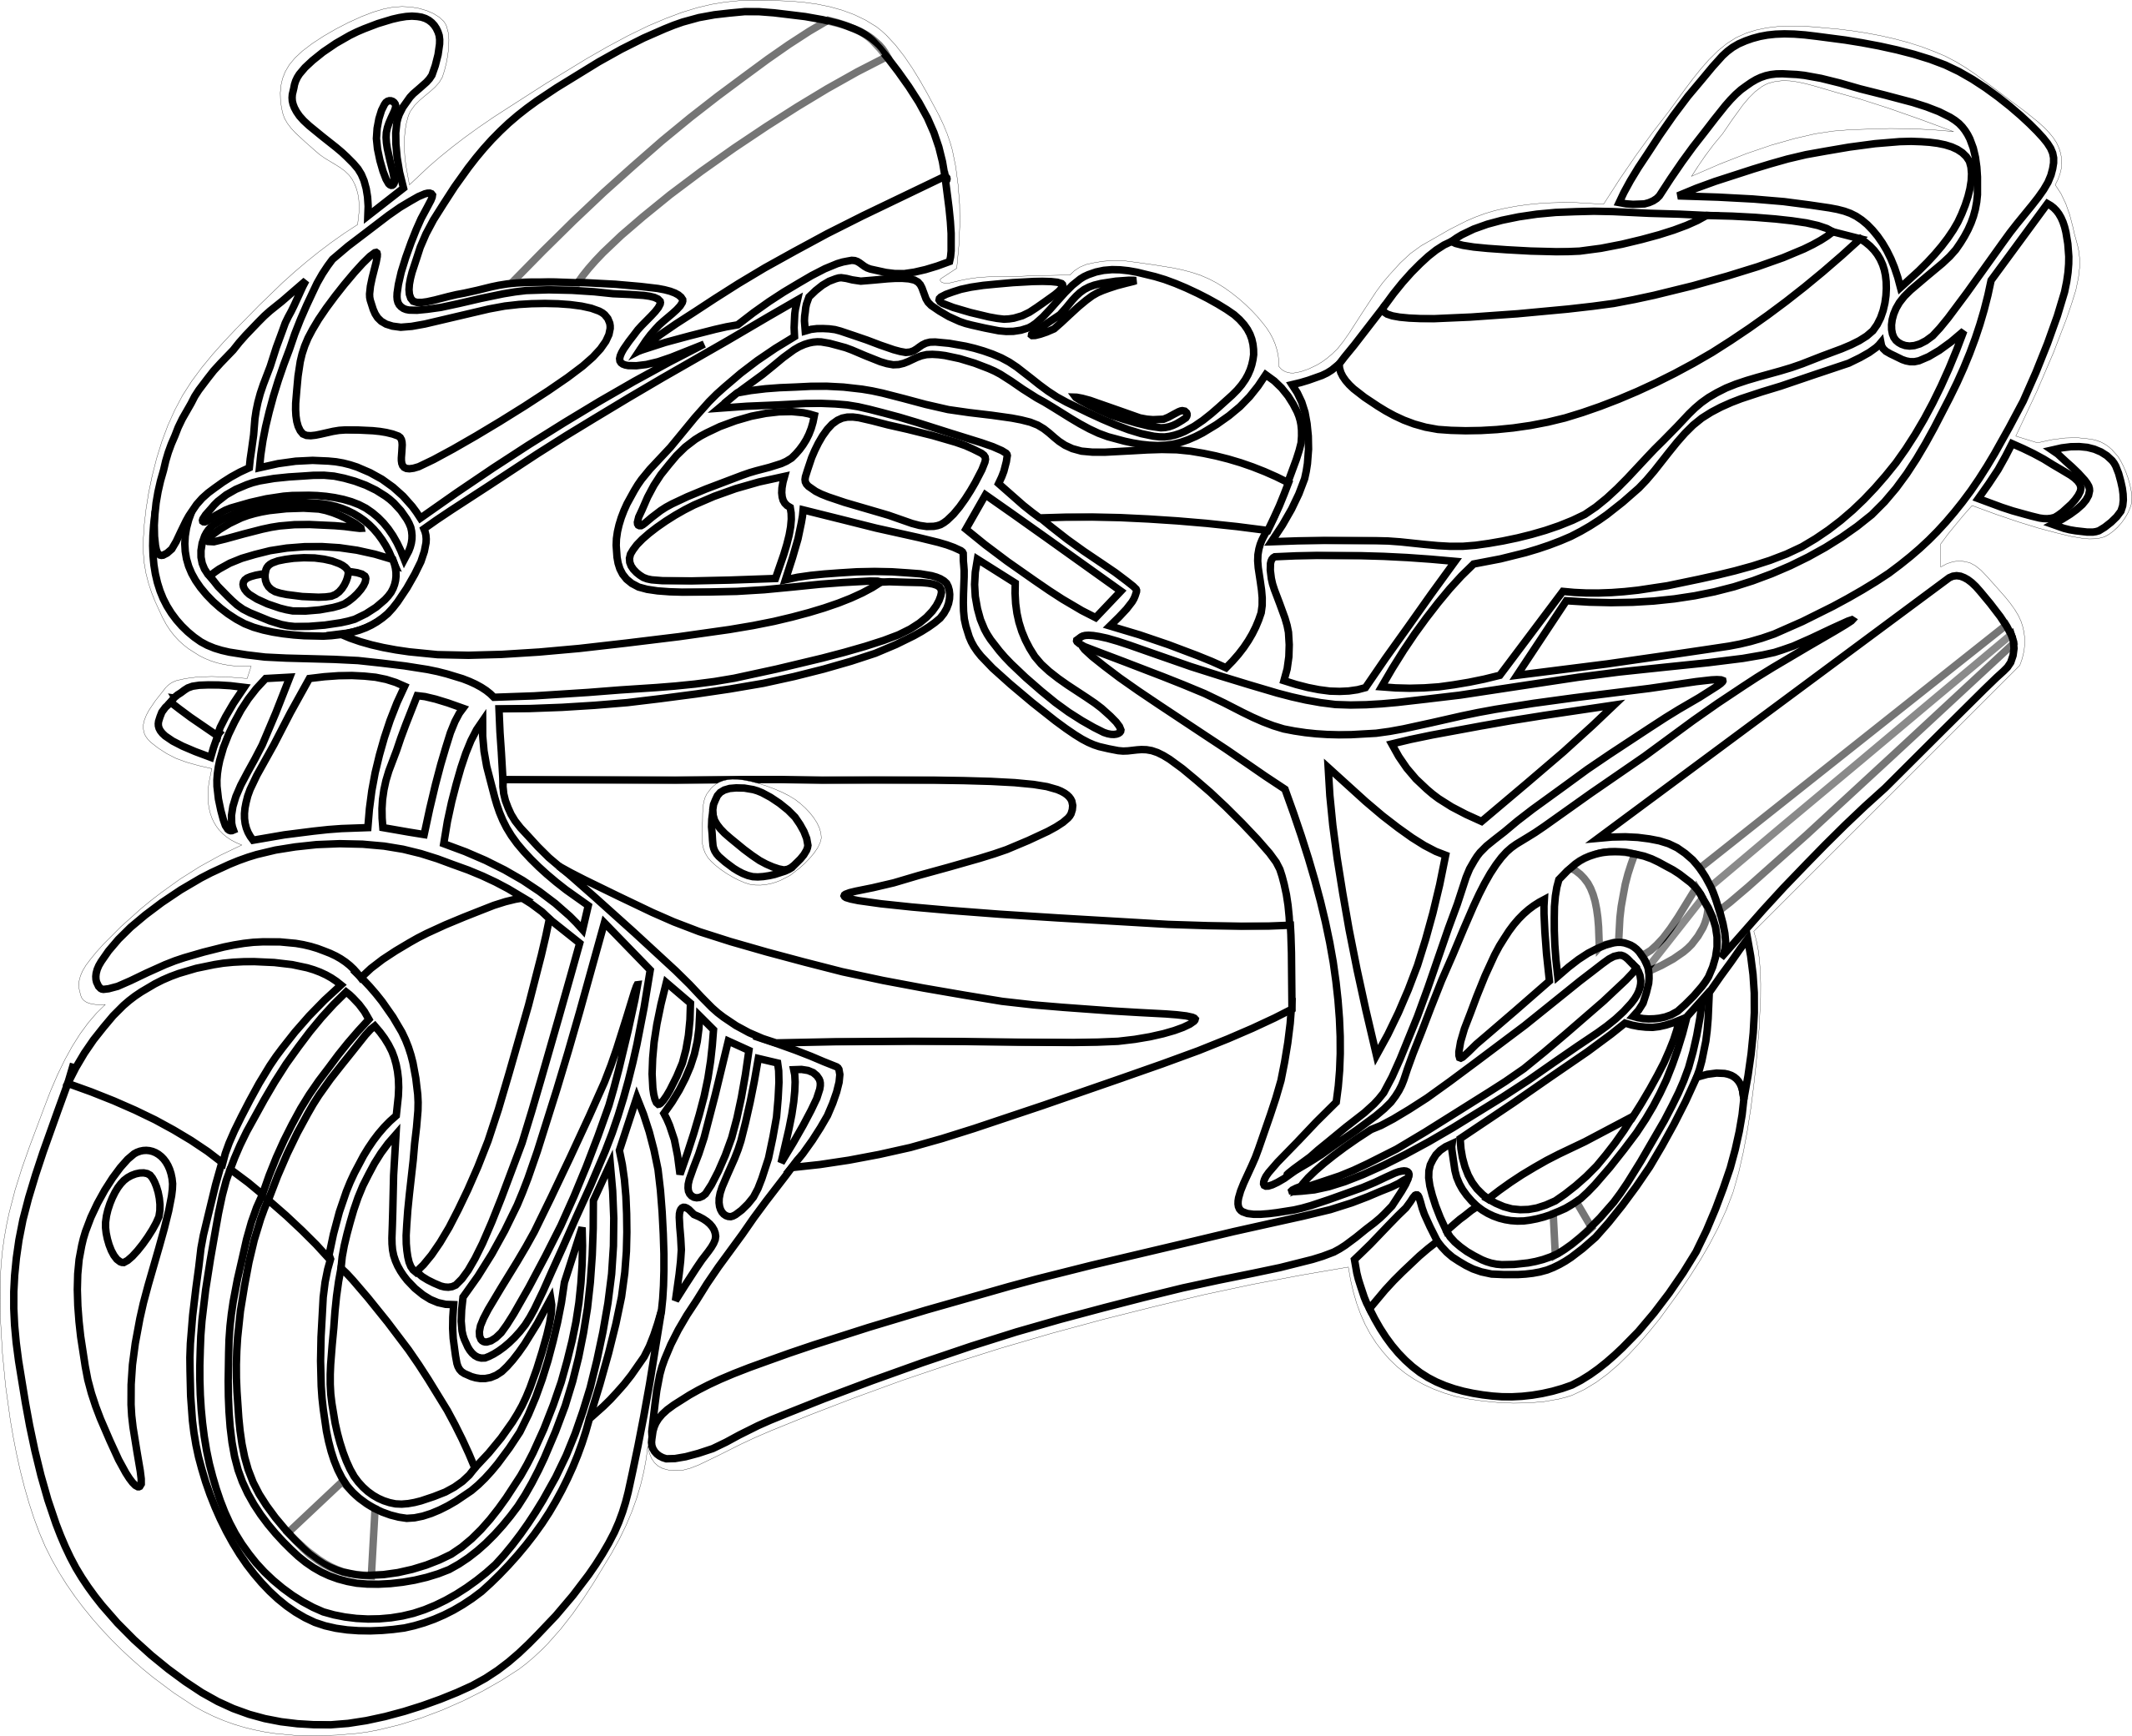 clipart free Motorcycle silhouette clip art. Clipart nest black and white